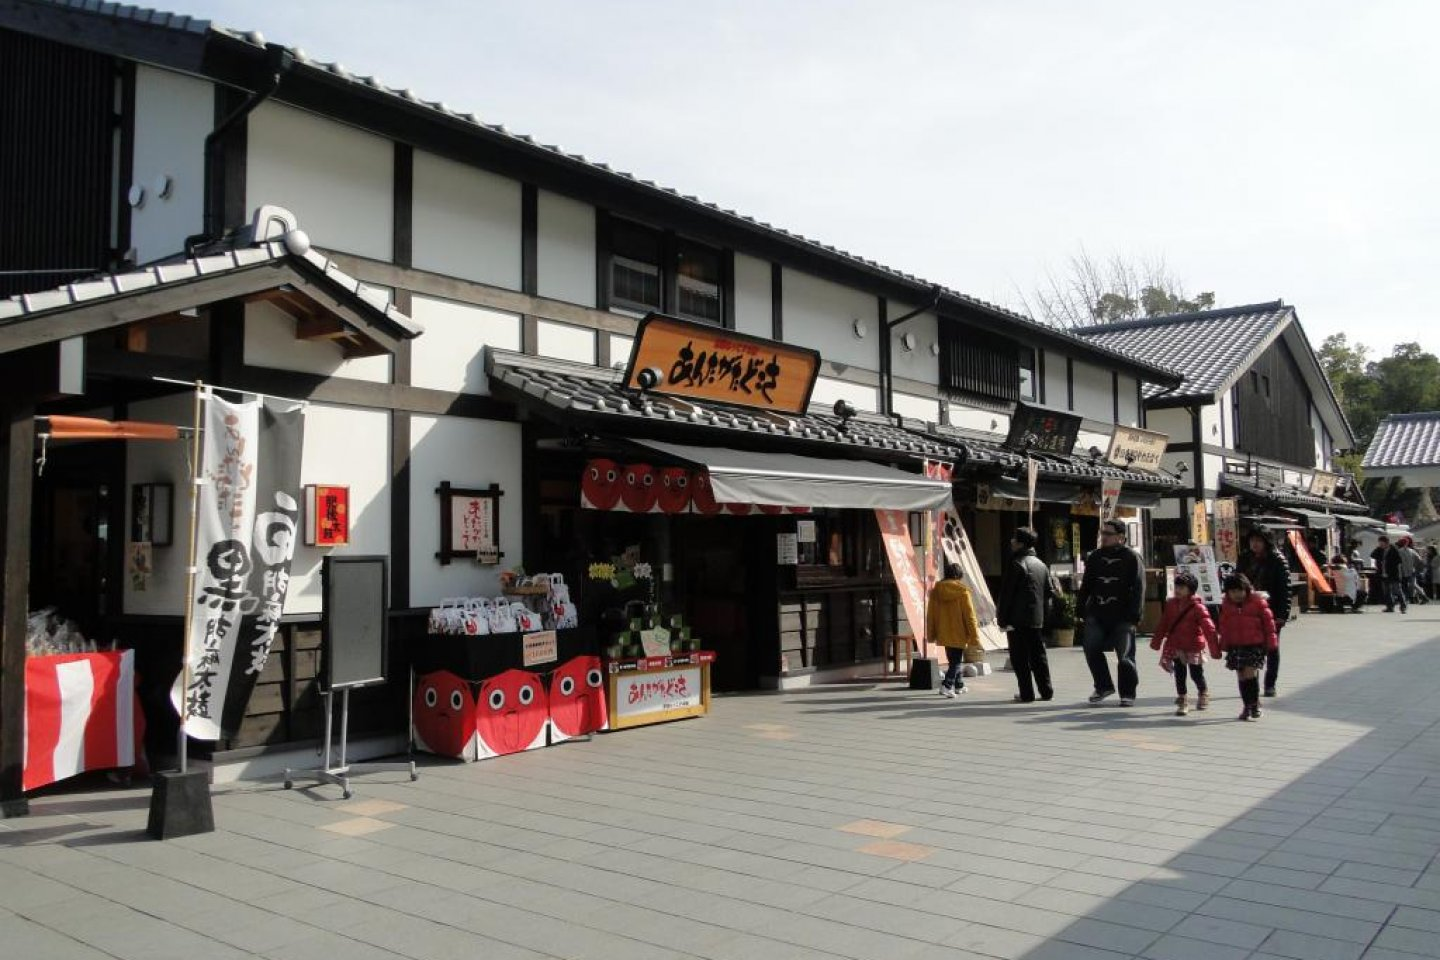 The shops of Sakura-no-baba Josaien